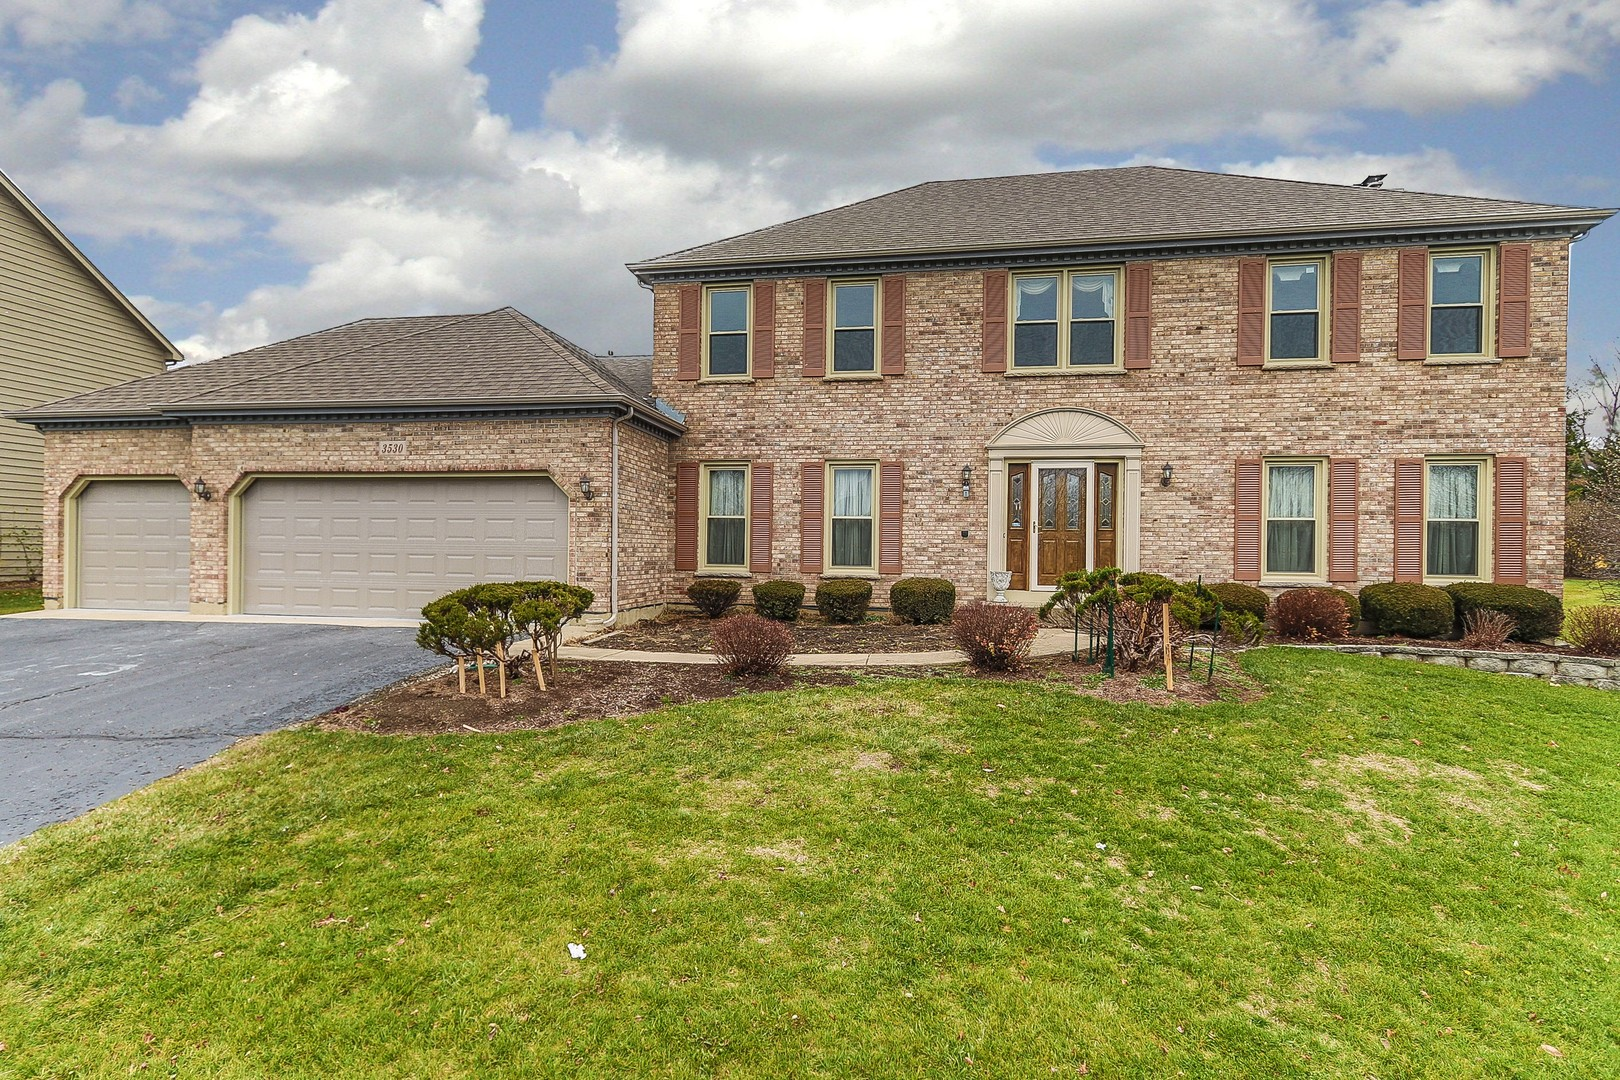 Photo for 3530 Lakeview Drive, Algonquin, IL 60102 (MLS # 10943863)